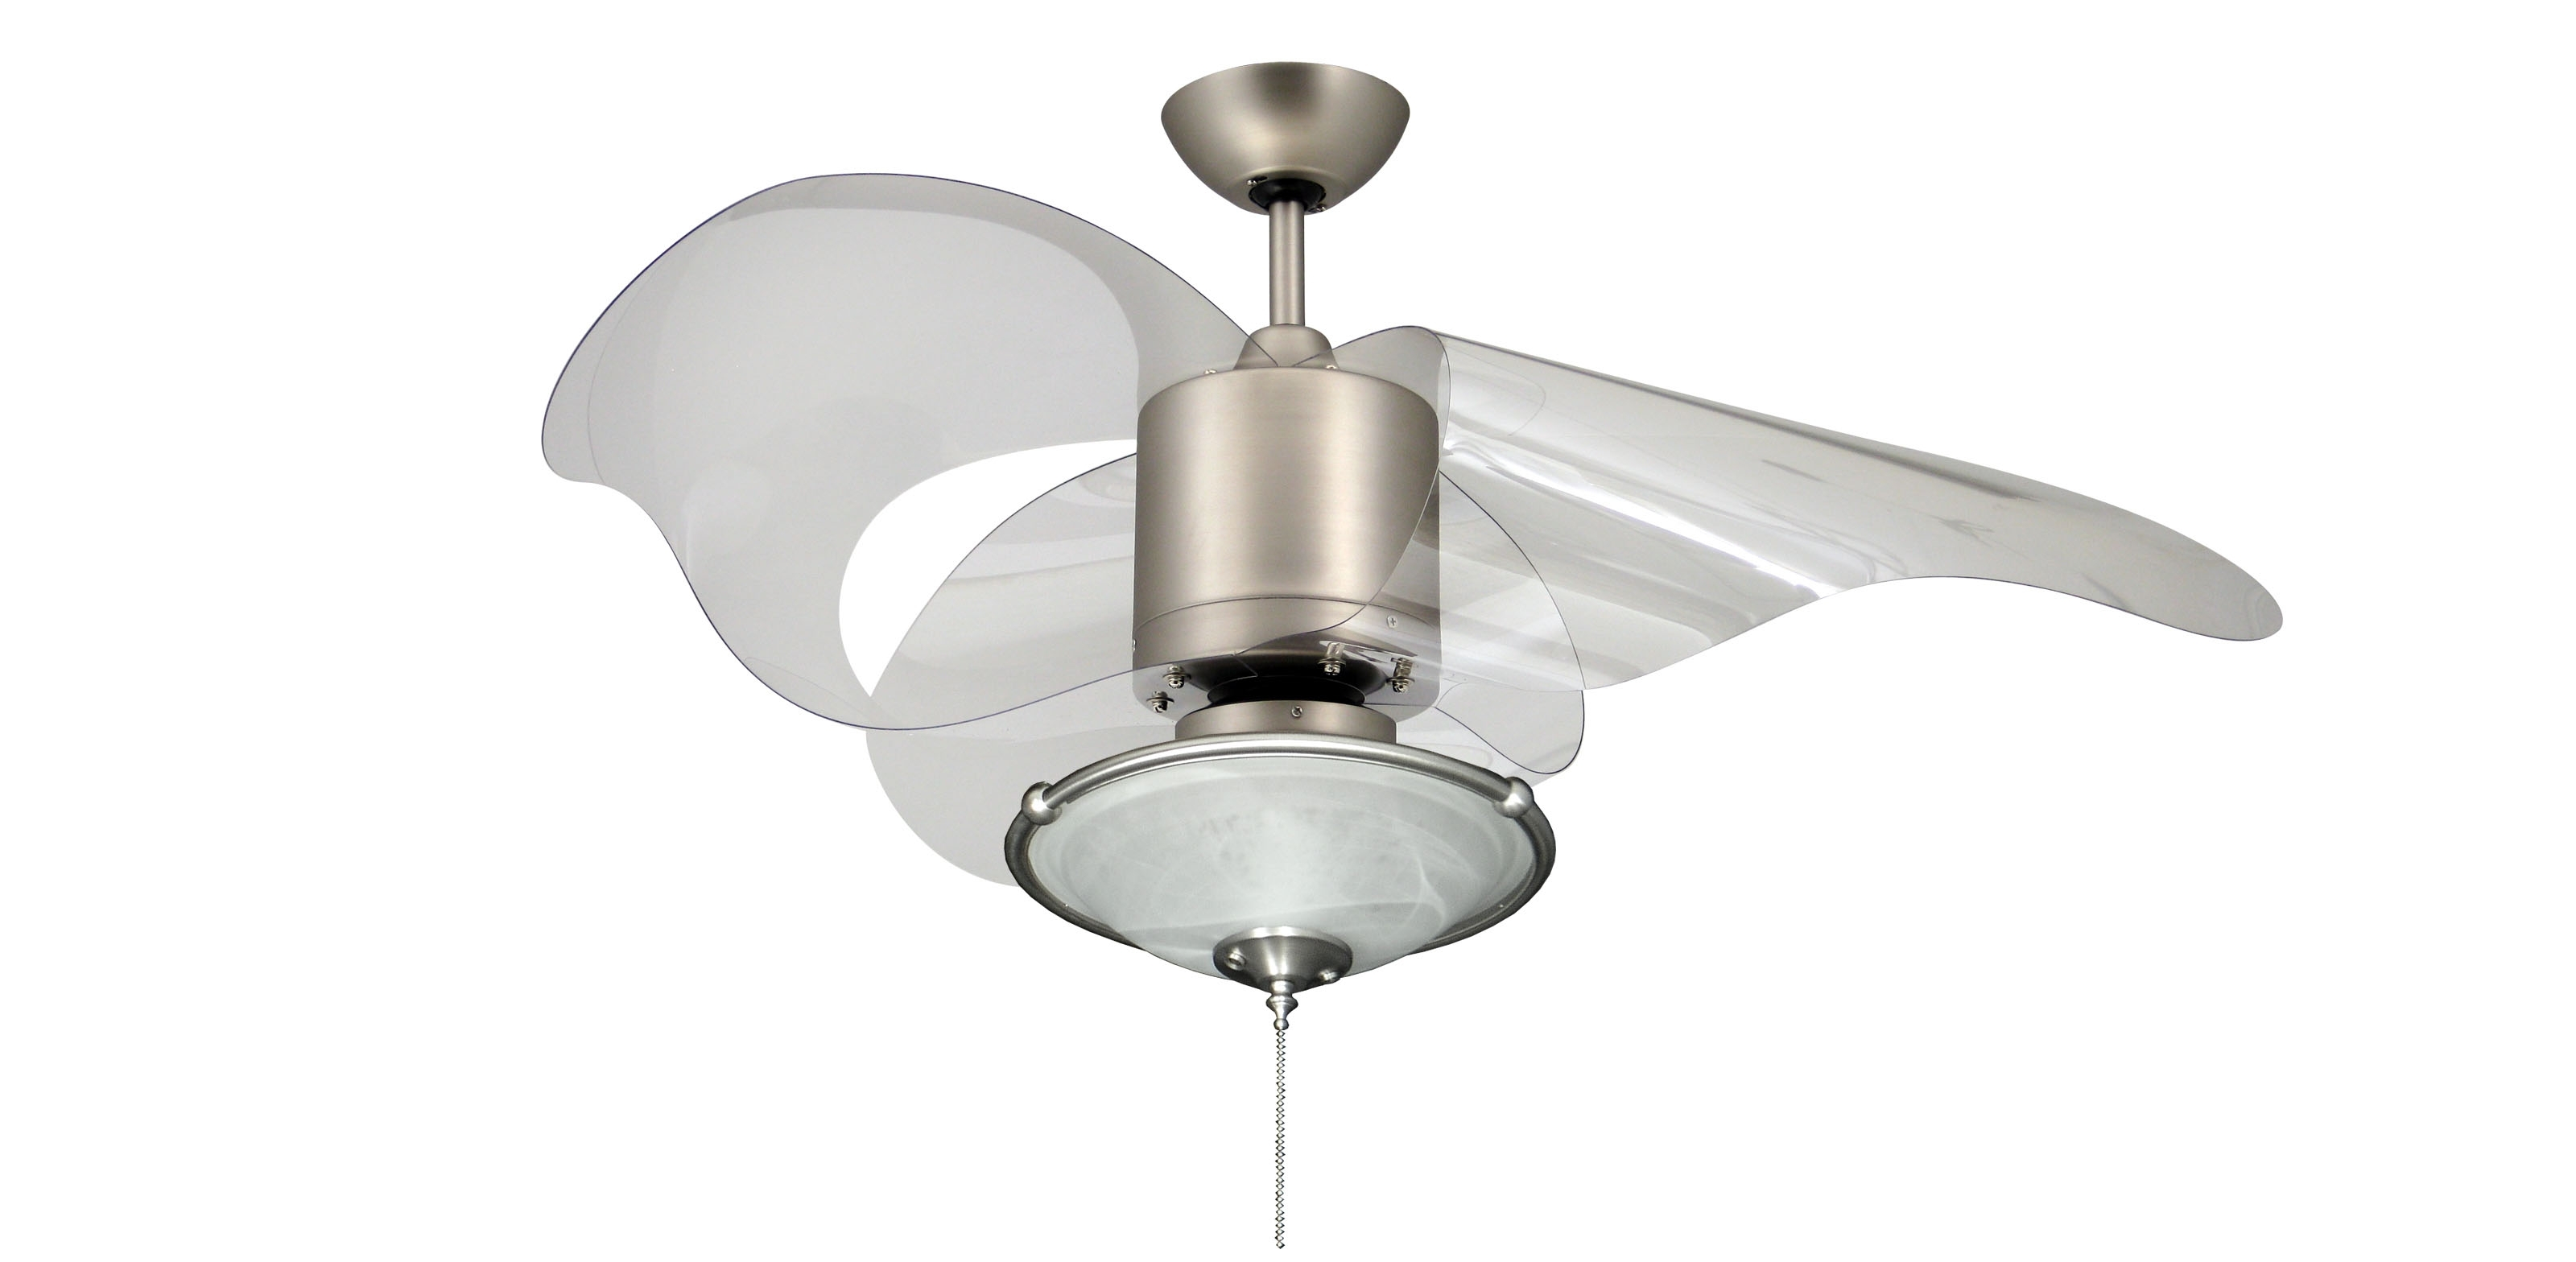 Current Ceiling: Extraordinary Ceiling Fans For Small Rooms Mini Ceiling Intended For 24 Inch Outdoor Ceiling Fans With Light (View 5 of 20)